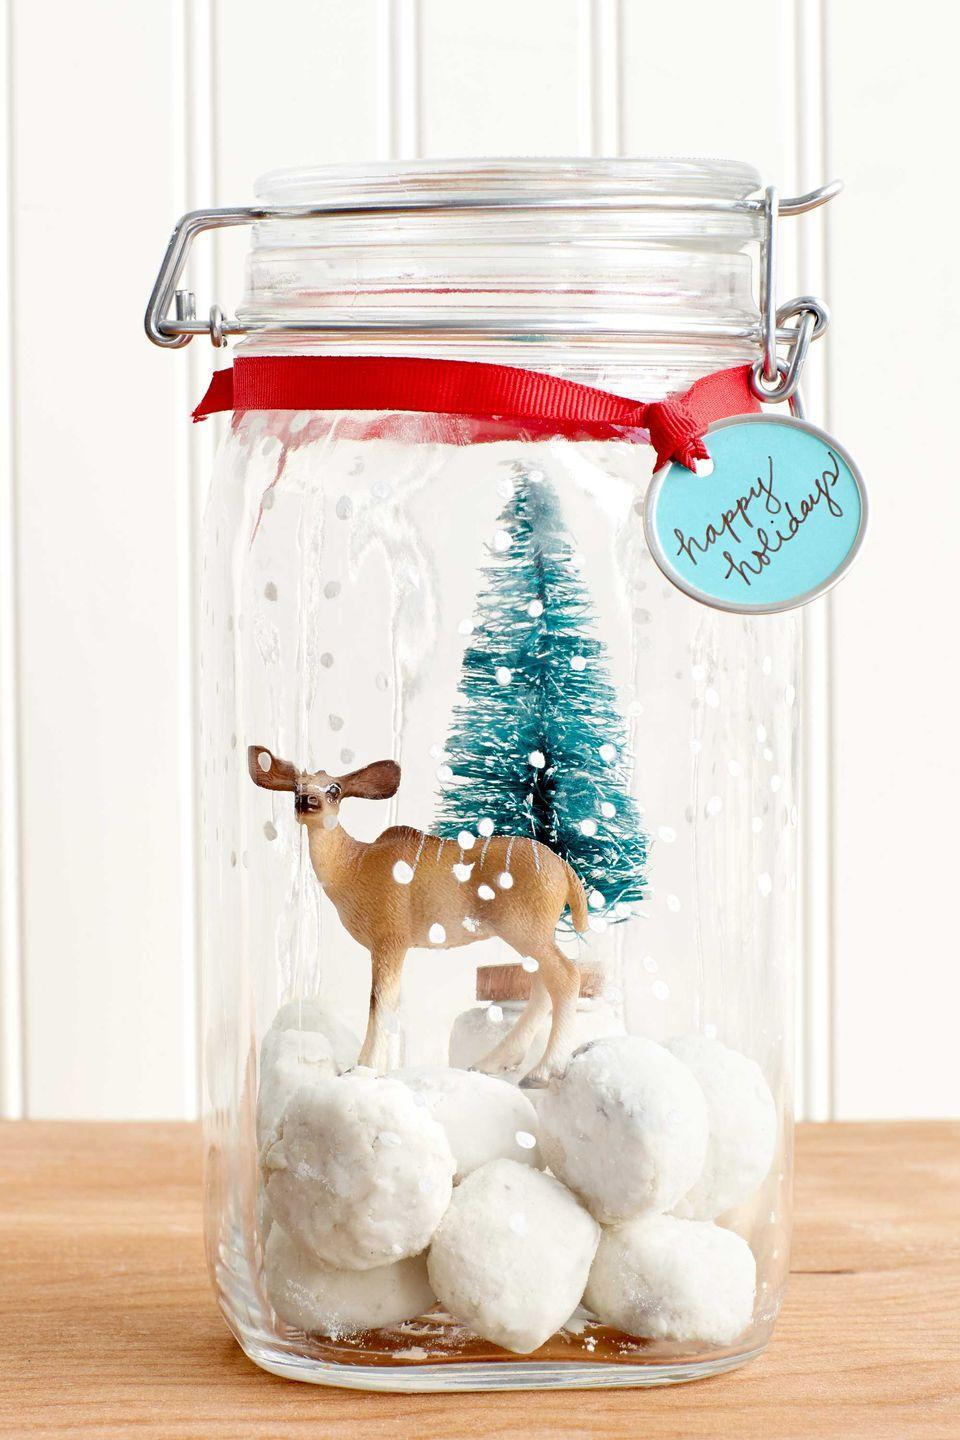 "<p>Skip the same-old tin and give cookies in a festive (airtight!) jar instead.</p><p><strong>Step 1:</strong> Use a fine-tipped brush to paint small white dots on the outside of a glass jar.</p><p><strong><strong>Step 2:</strong> </strong>Fill bottom of jar with <a href=""https://www.countryliving.com/food-drinks/recipes/a5975/mexican-wedding-cookies-clx1014/"" rel=""nofollow noopener"" target=""_blank"" data-ylk=""slk:snowball cookies"" class=""link rapid-noclick-resp"">snowball cookies</a>. Place small plastic trinkets inside for a snow globe-inspired vignette.</p><p><strong>Step 3:</strong> Tie gift tag to jar with ribbon.<br></p><p><a class=""link rapid-noclick-resp"" href=""https://www.amazon.com/32oz-Regular-Mouth-Canning-Mason/dp/B01N6QBJG0?tag=syn-yahoo-20&ascsubtag=%5Bartid%7C10050.g.647%5Bsrc%7Cyahoo-us"" rel=""nofollow noopener"" target=""_blank"" data-ylk=""slk:SHOP MASON JARS"">SHOP MASON JARS</a><br></p>"